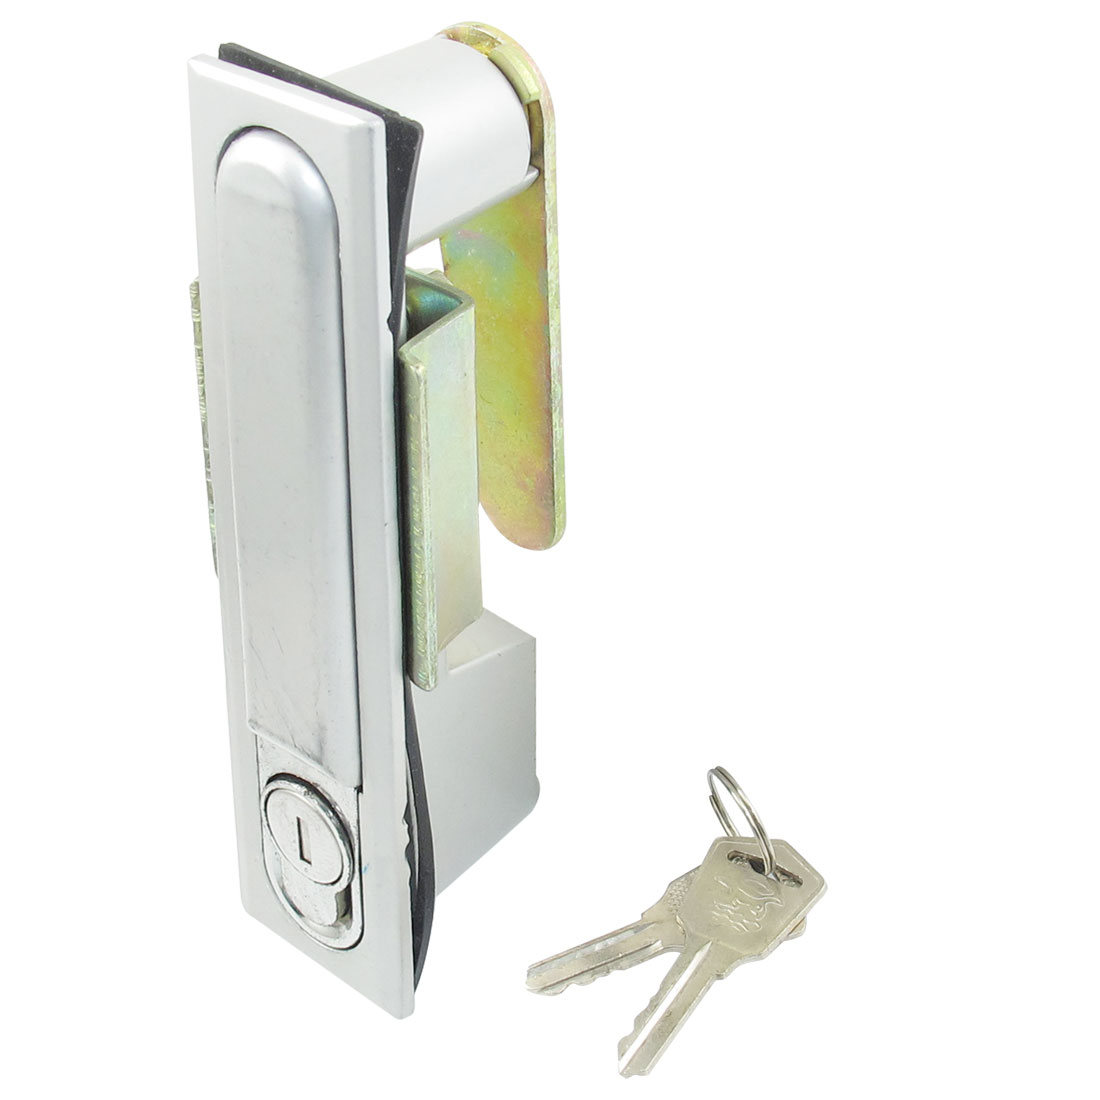 Silver Tone Metal Pop-up Push Button Store Cabinet Door Plane Cam Lock